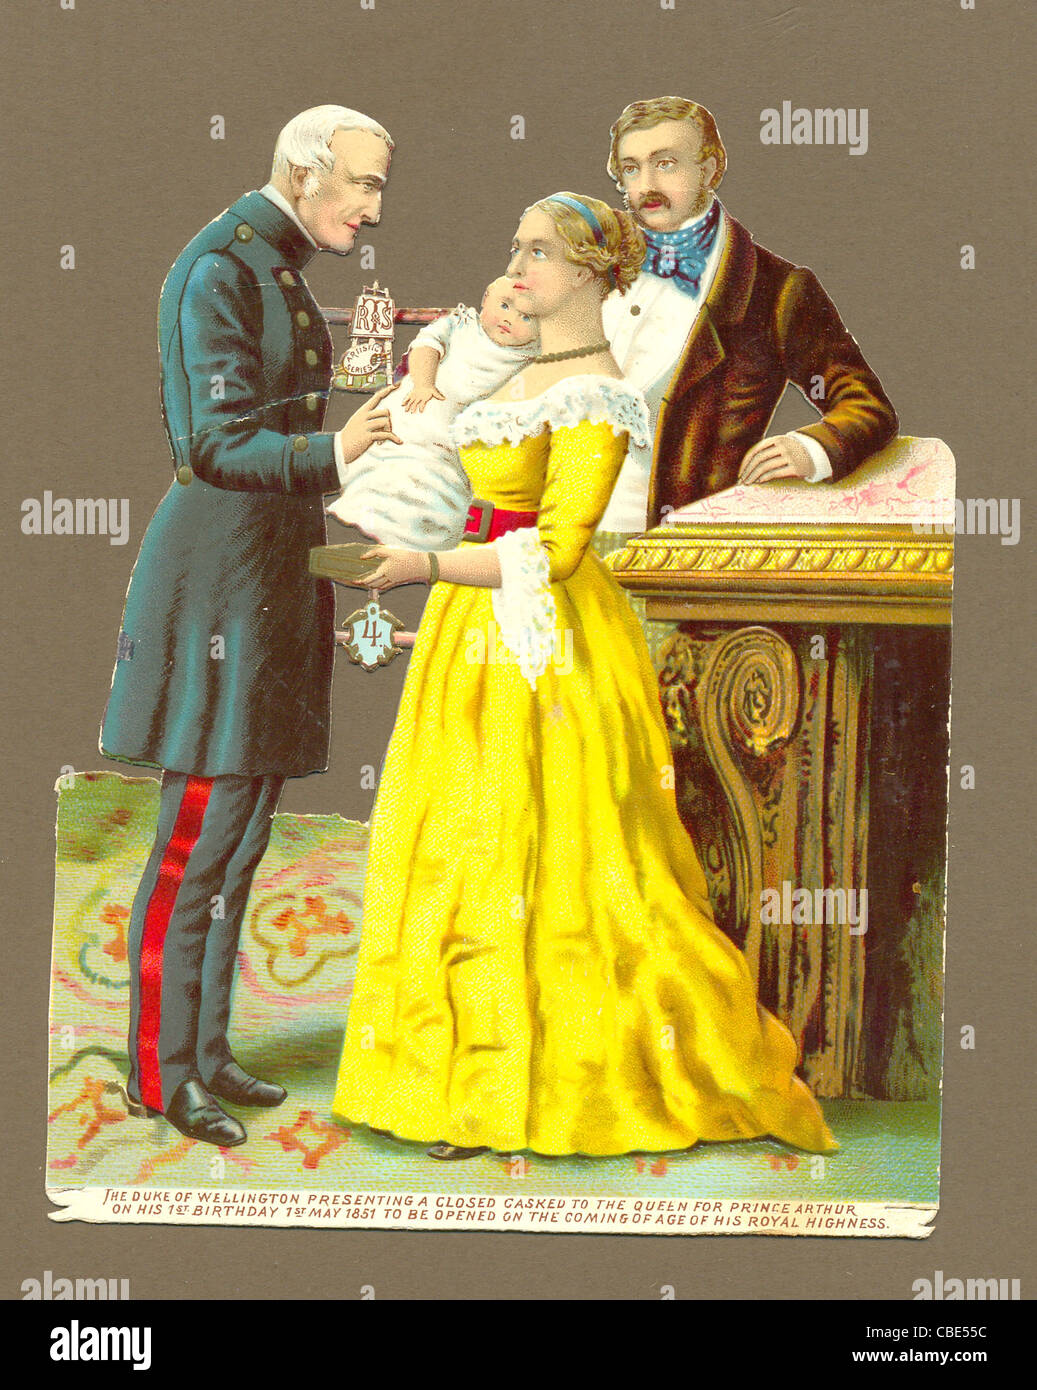 Chromolithographed die cut scrap of the Duke of Wellington in 1851 presenting a casket to Queen Victoria - Stock Image